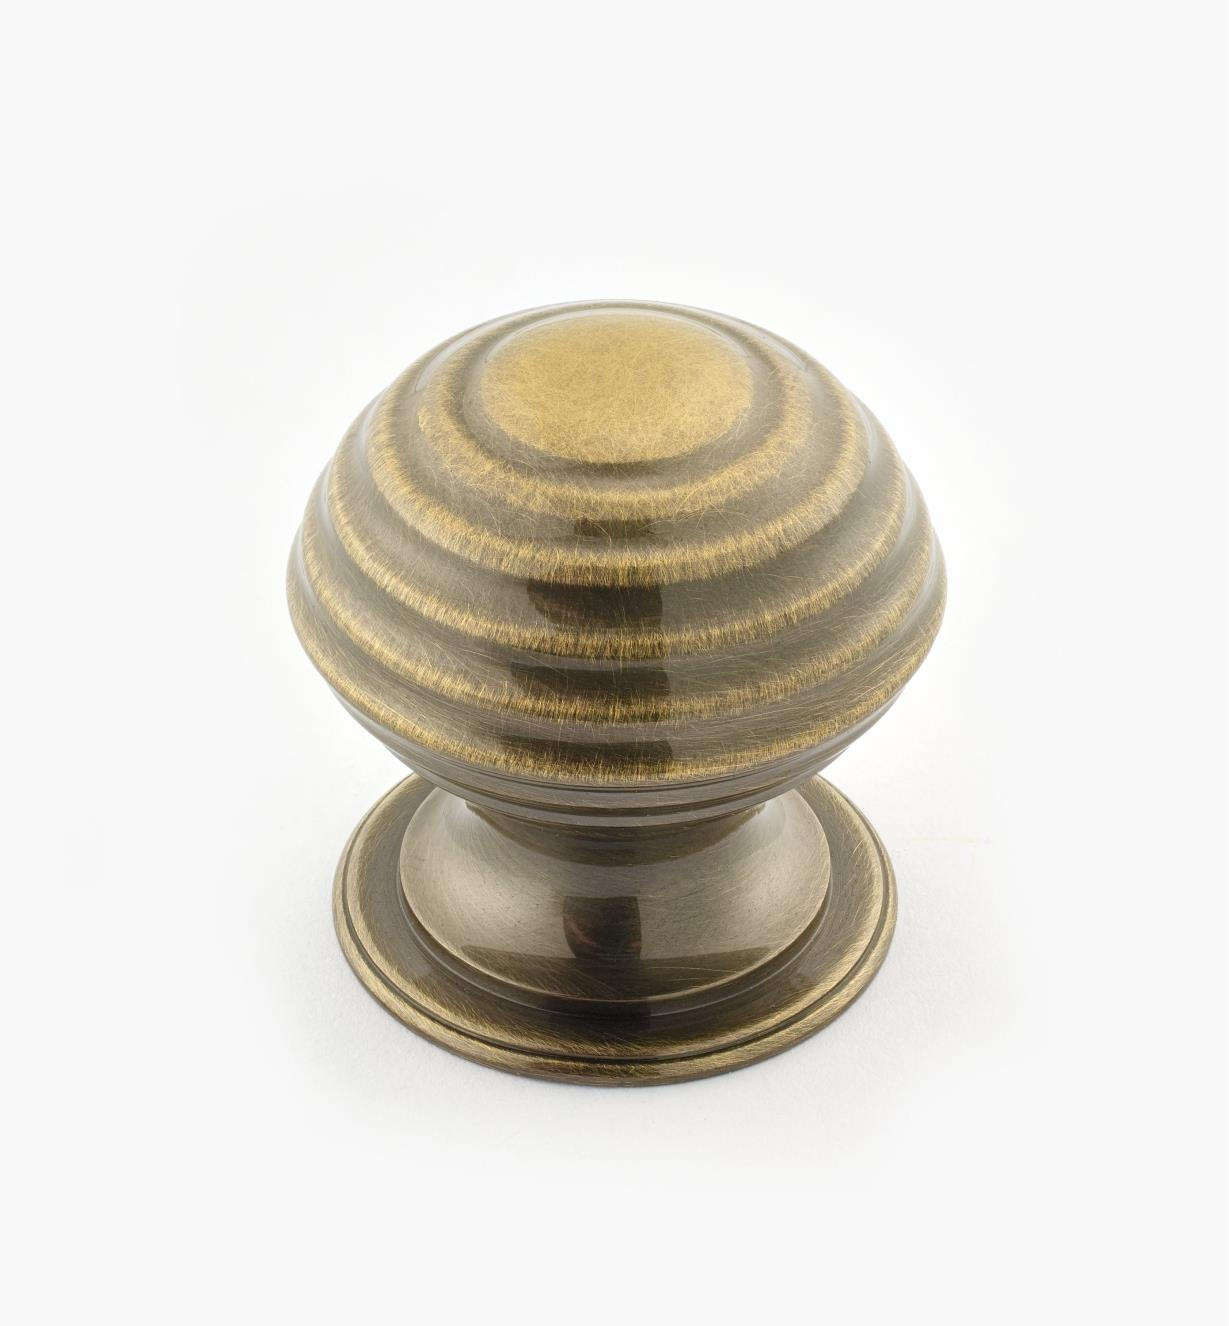 "02W3236 - Antique Brass Suite - 1 1/2"" x 1 1/2"" Turned Brass Ridged Knob"